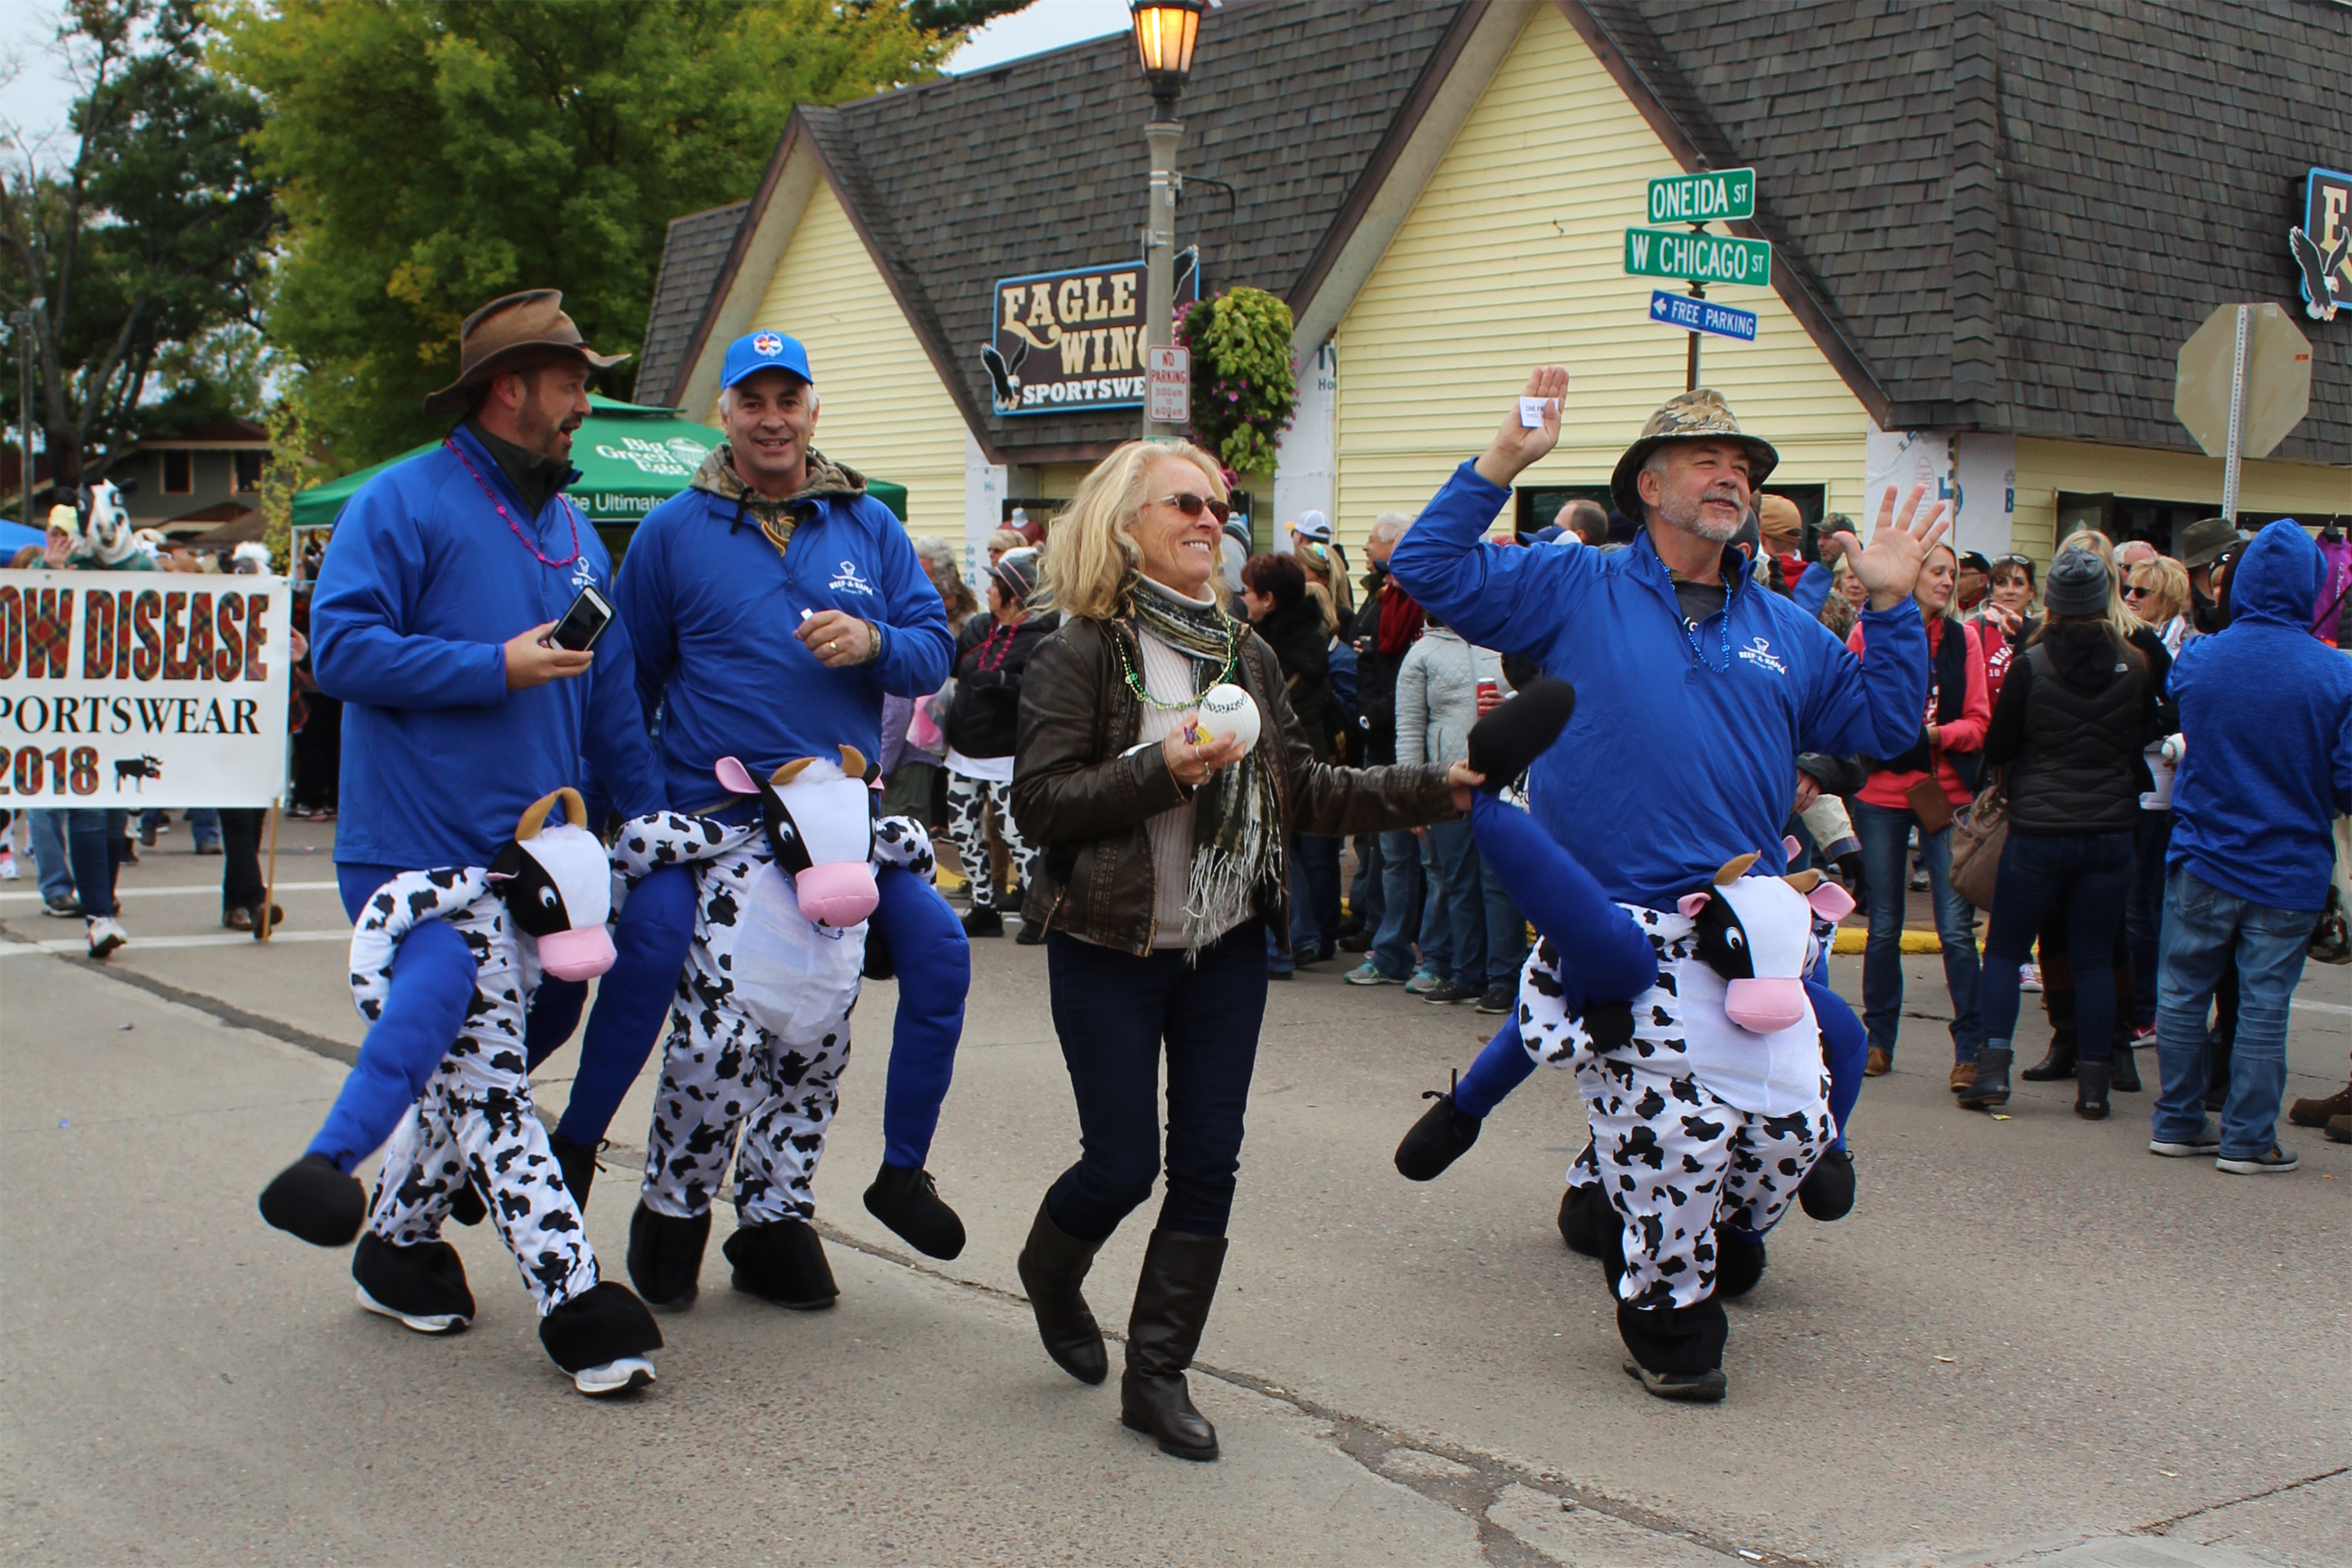 Dancing in the streets at the 54th annual Beef-A-Rama event in Minocqua. Kim Johnson photo